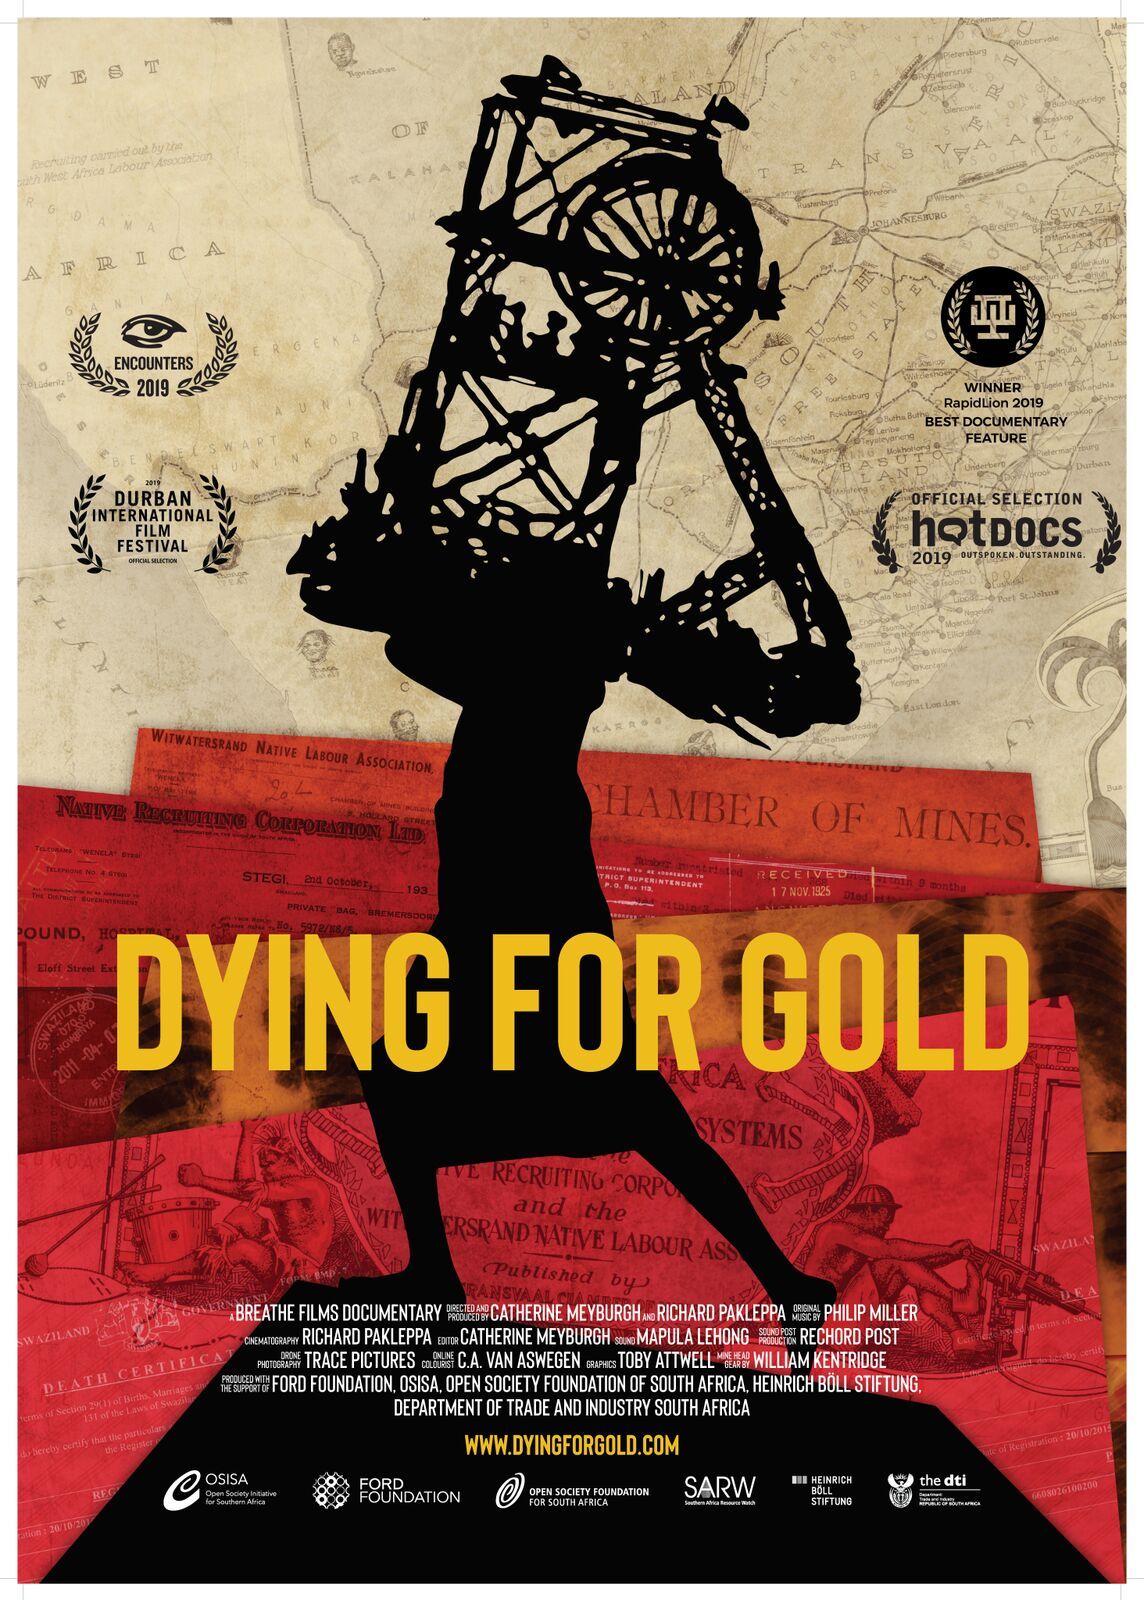 After Porn Ends Documental Online dying for gold documentary confronts south africa's gold